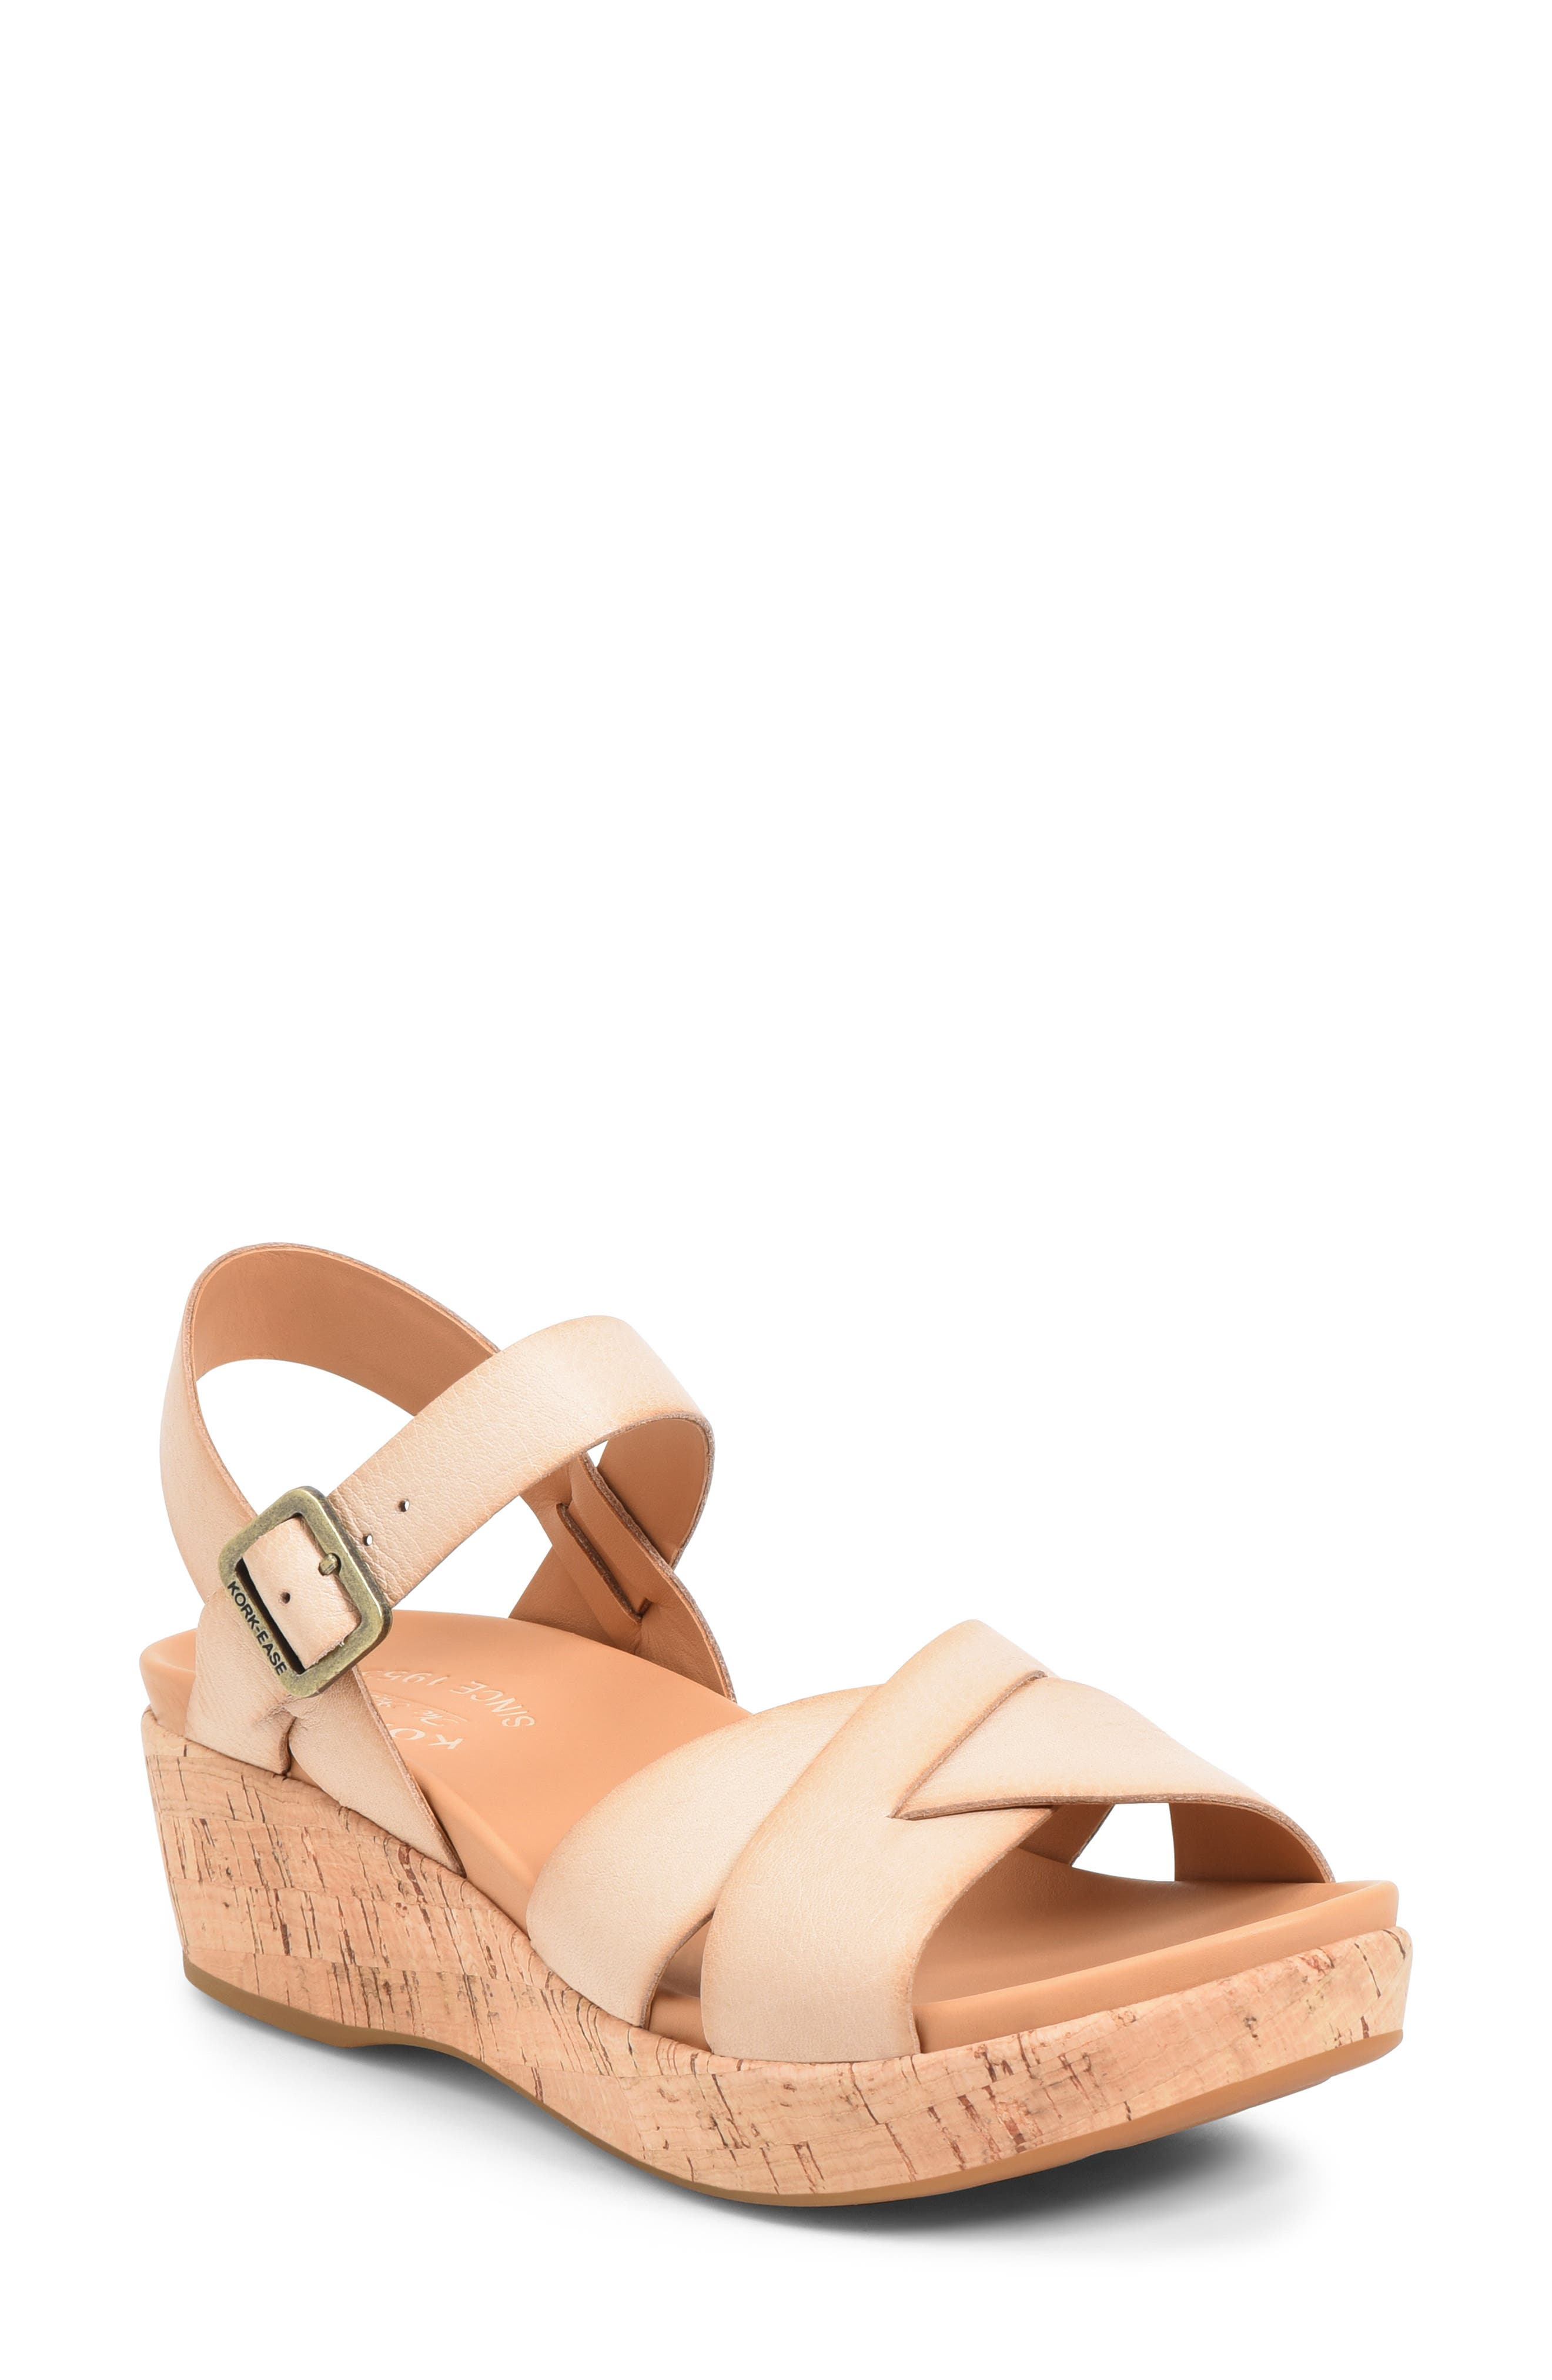 An earthy cork platform adds to the throwback appeal of a versatile ankle-strap sandal fashioned with a signature comfort footbed. Style Name: Kork-Ease \\\'Myrna 2.0\\\' Cork Wedge Sandal (Women). Style Number: 1014075. Available in stores.